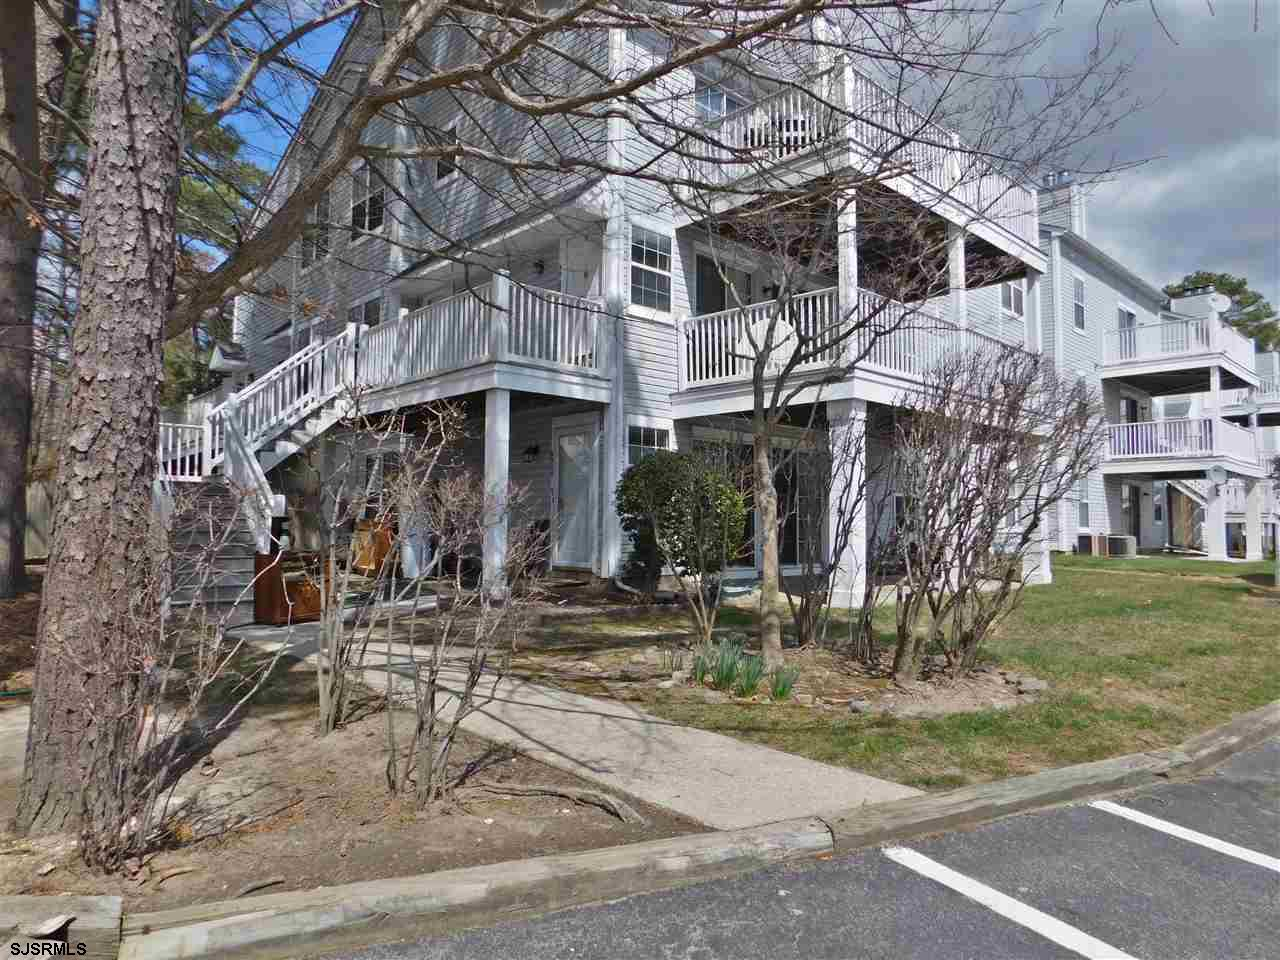 Adorable 1st FL 2 Bedroom / 1 Bath condo at the Villages of Hardings Run 2! Comes completely unfurni